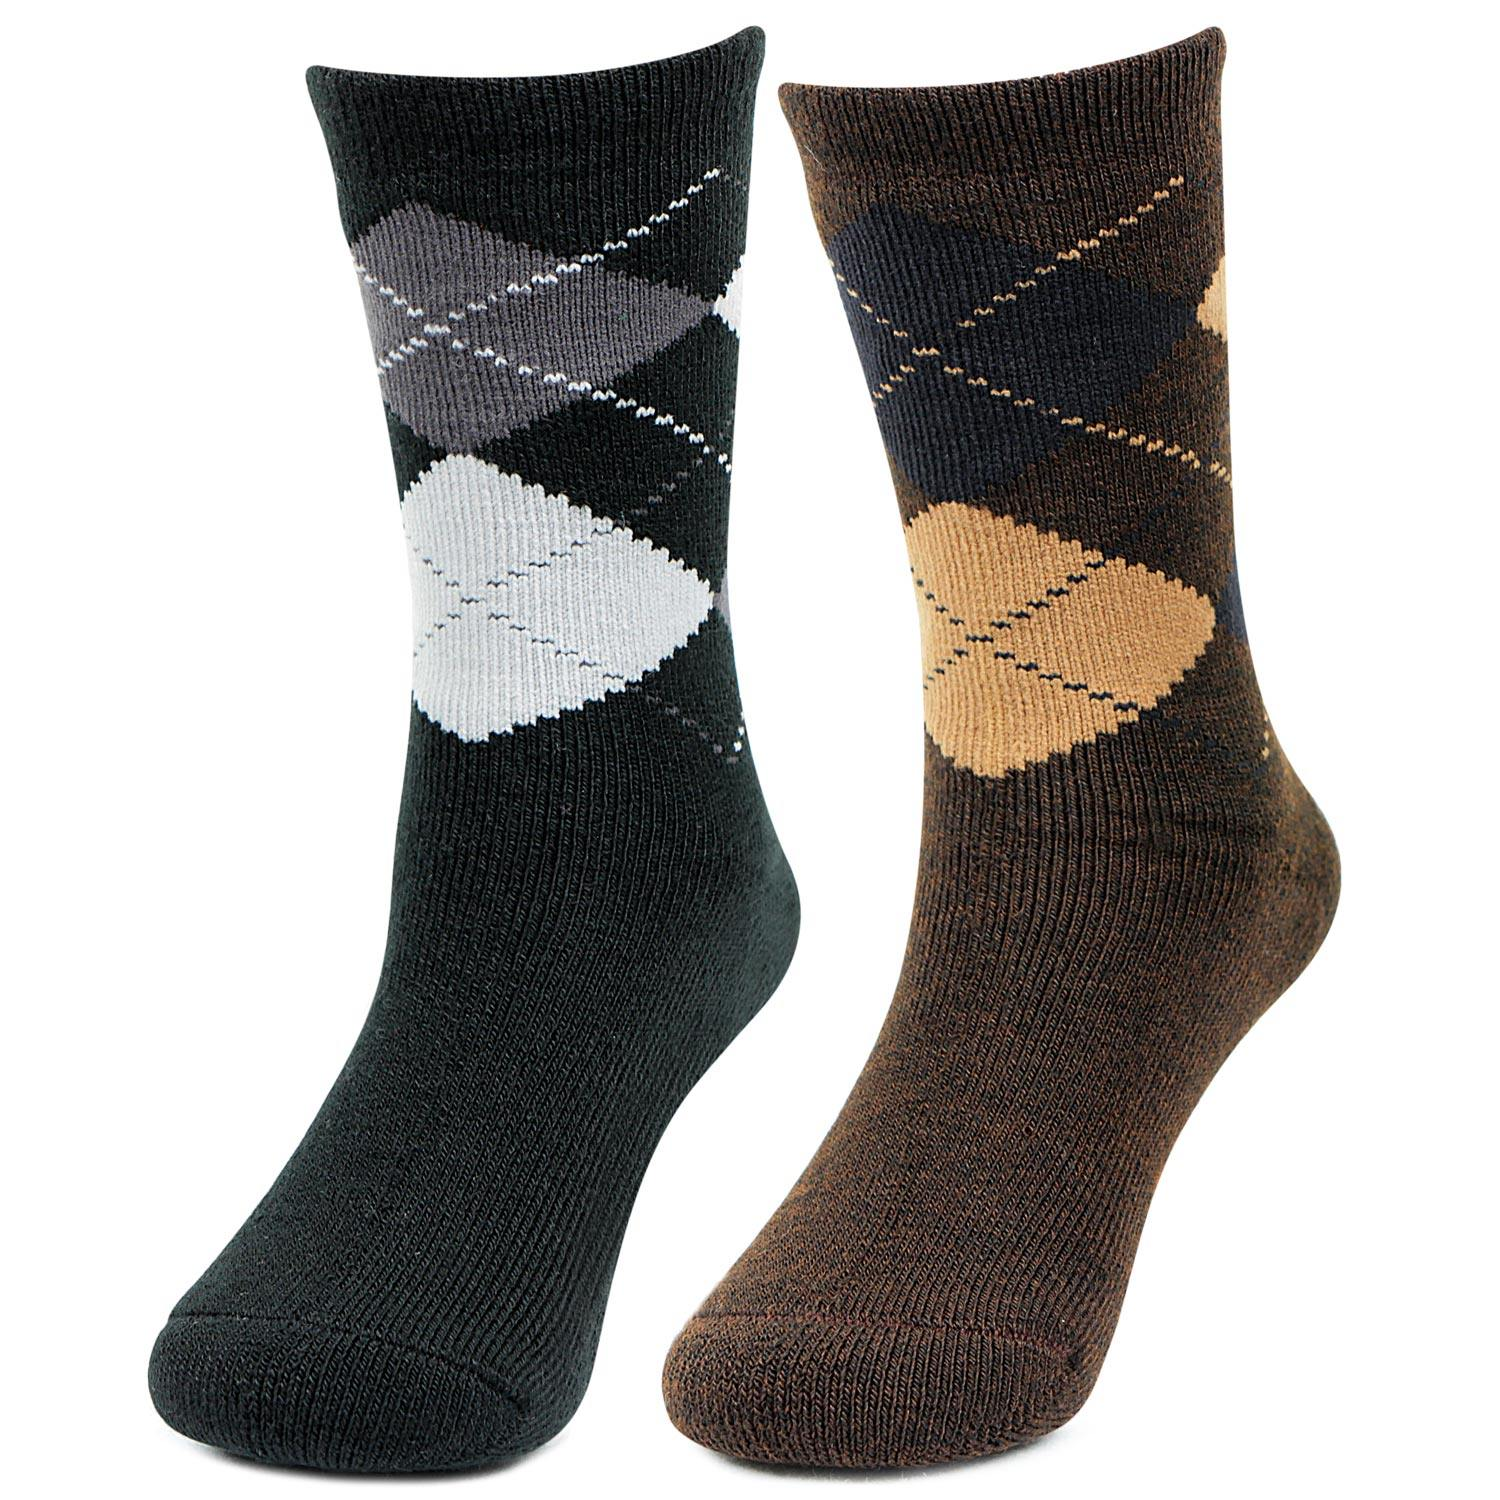 Kids Argyle Pattern Multicolored Woolen Crew Socks- Pack of 2